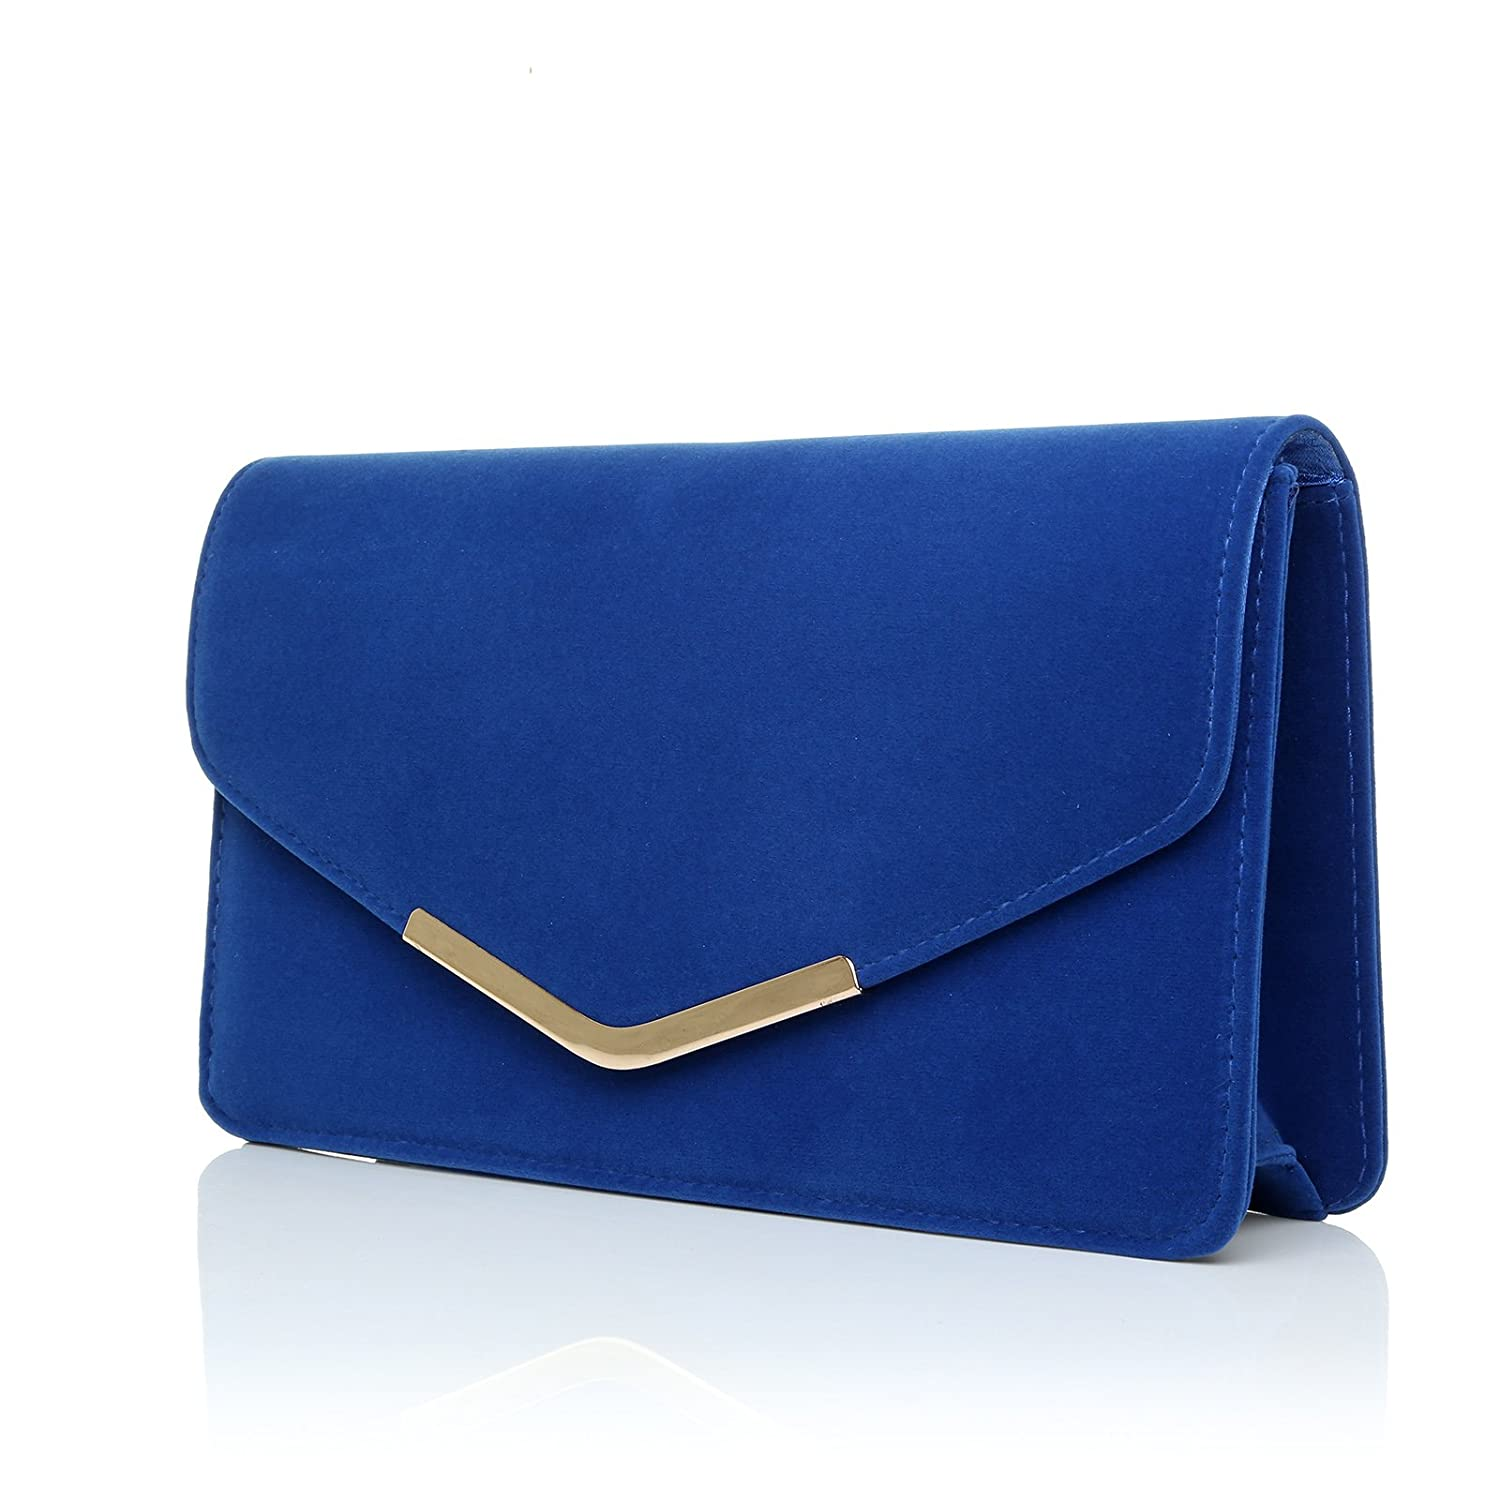 LUCKY Electric Blue Suede Medium Size Clutch Bag: ShuWish UK ...